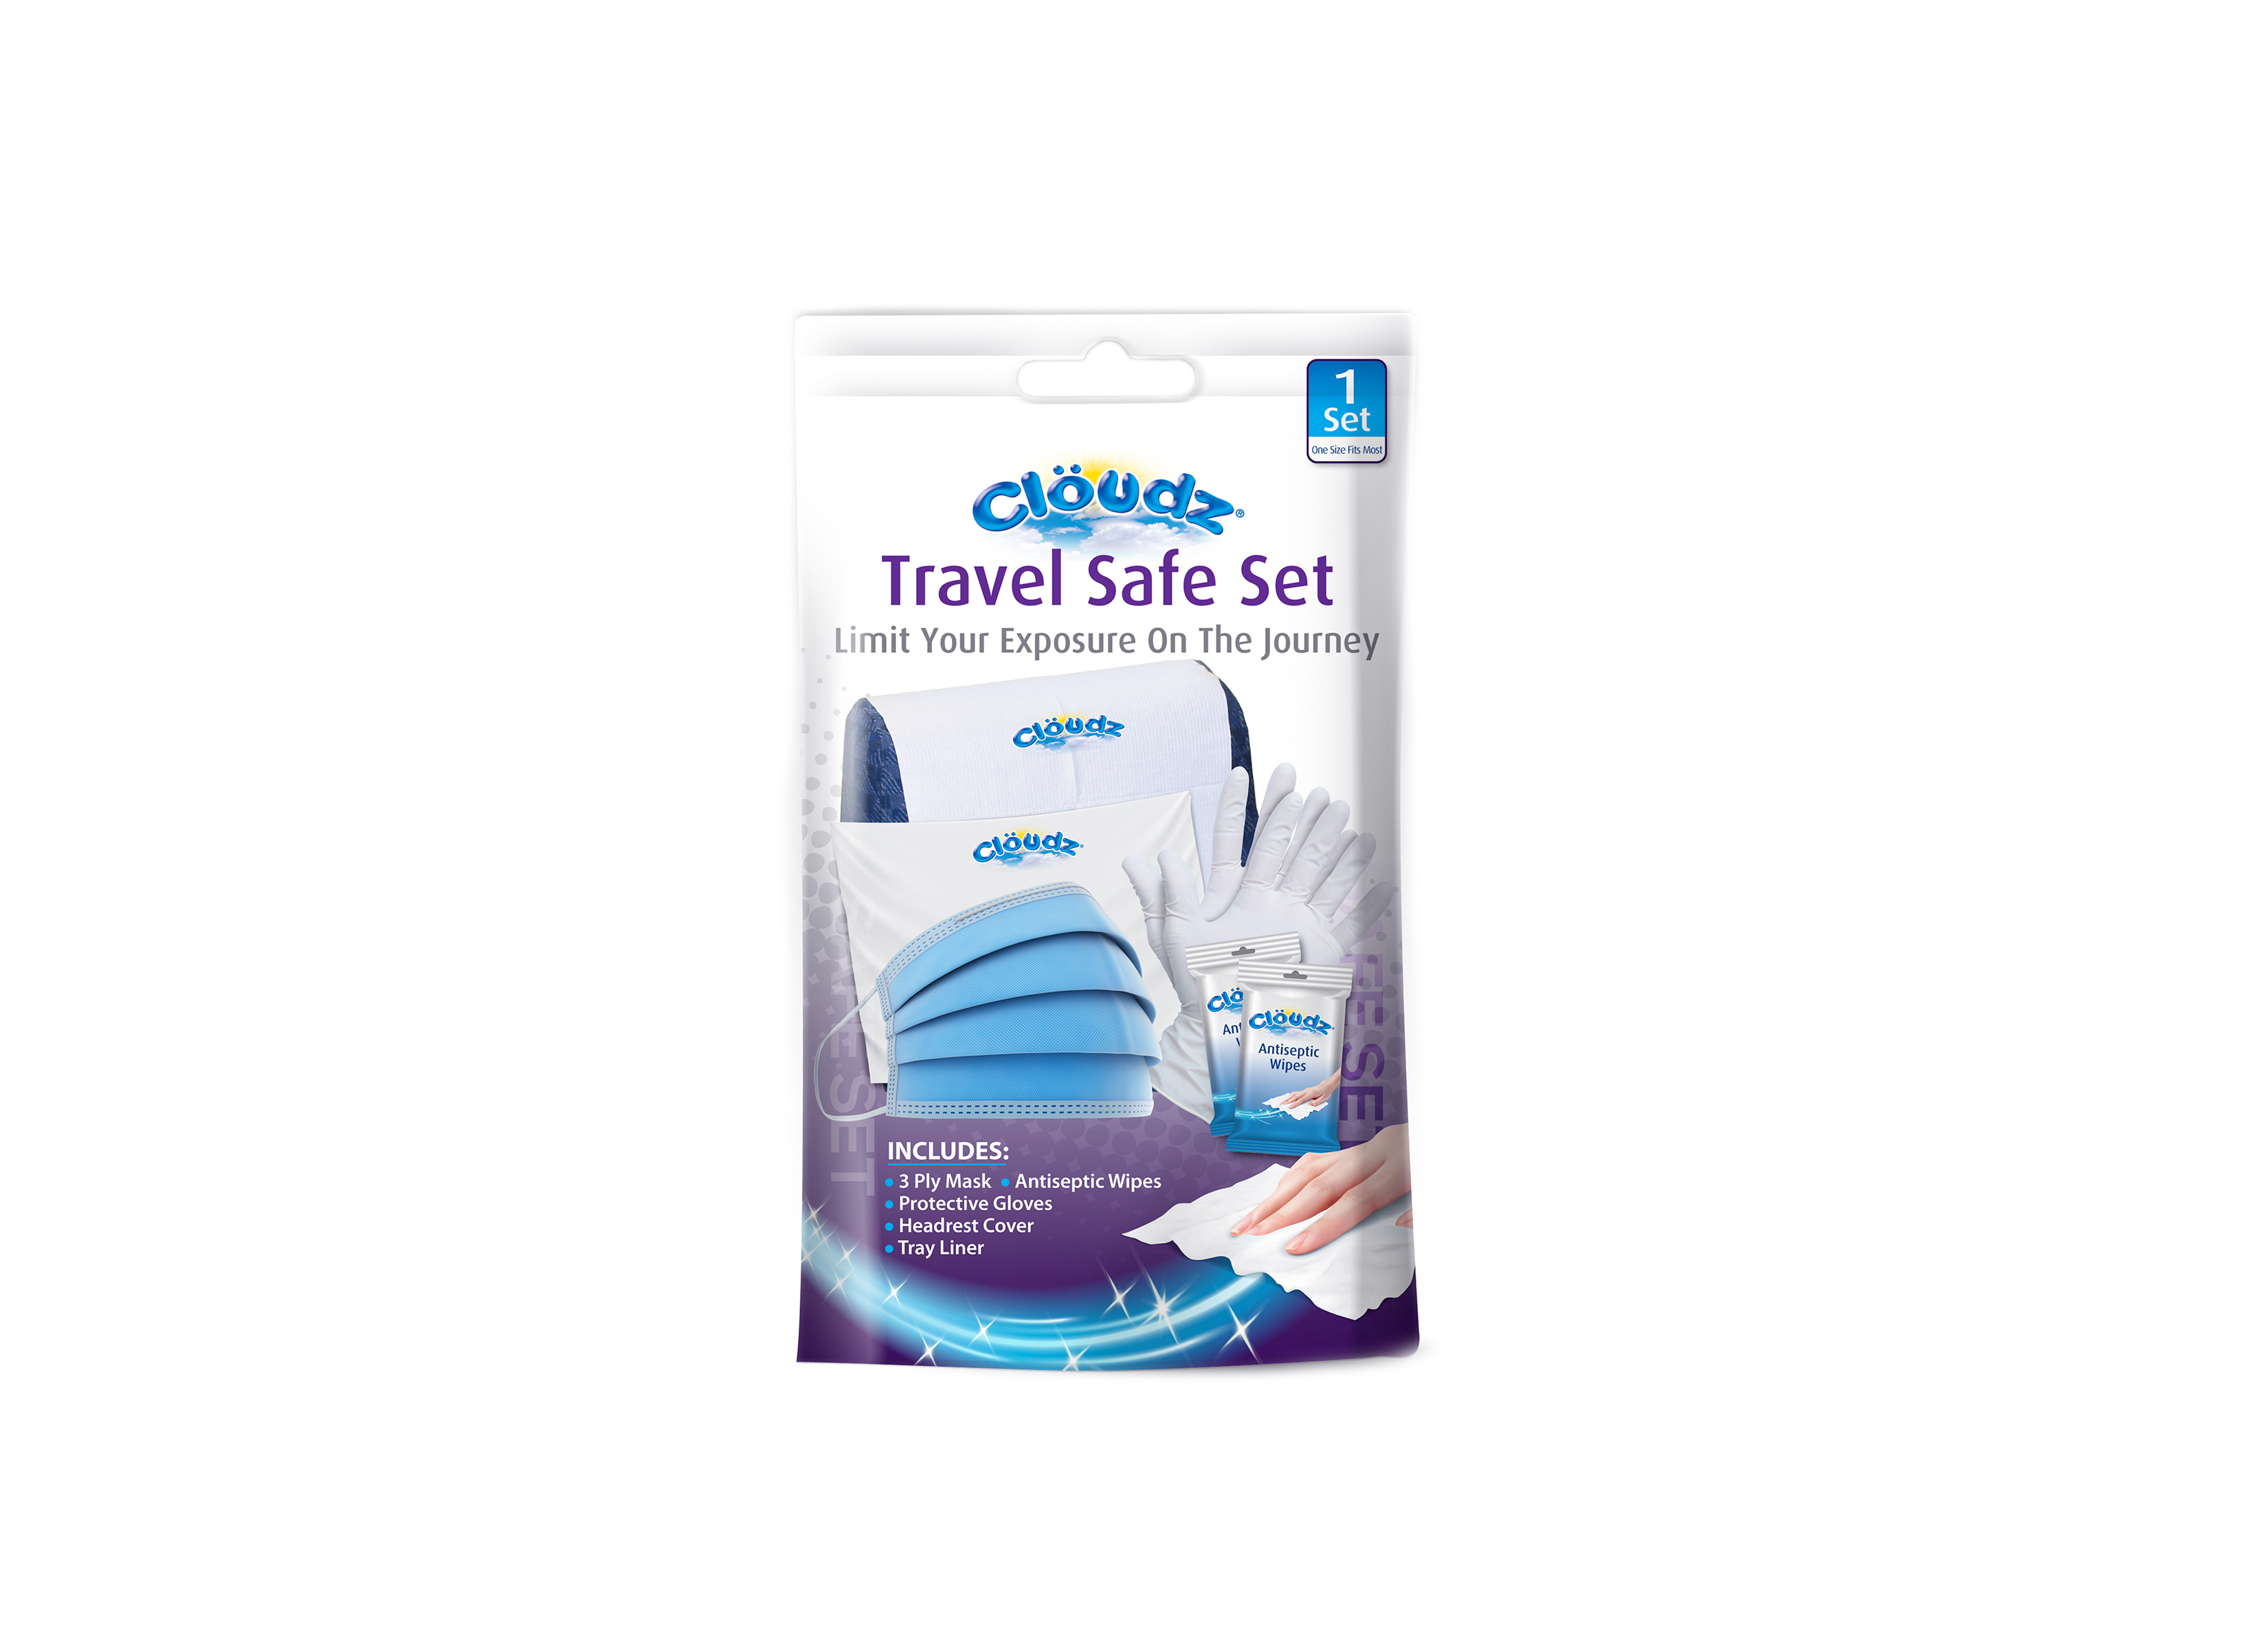 Cloudz Travel Safe Set - 6-1-20